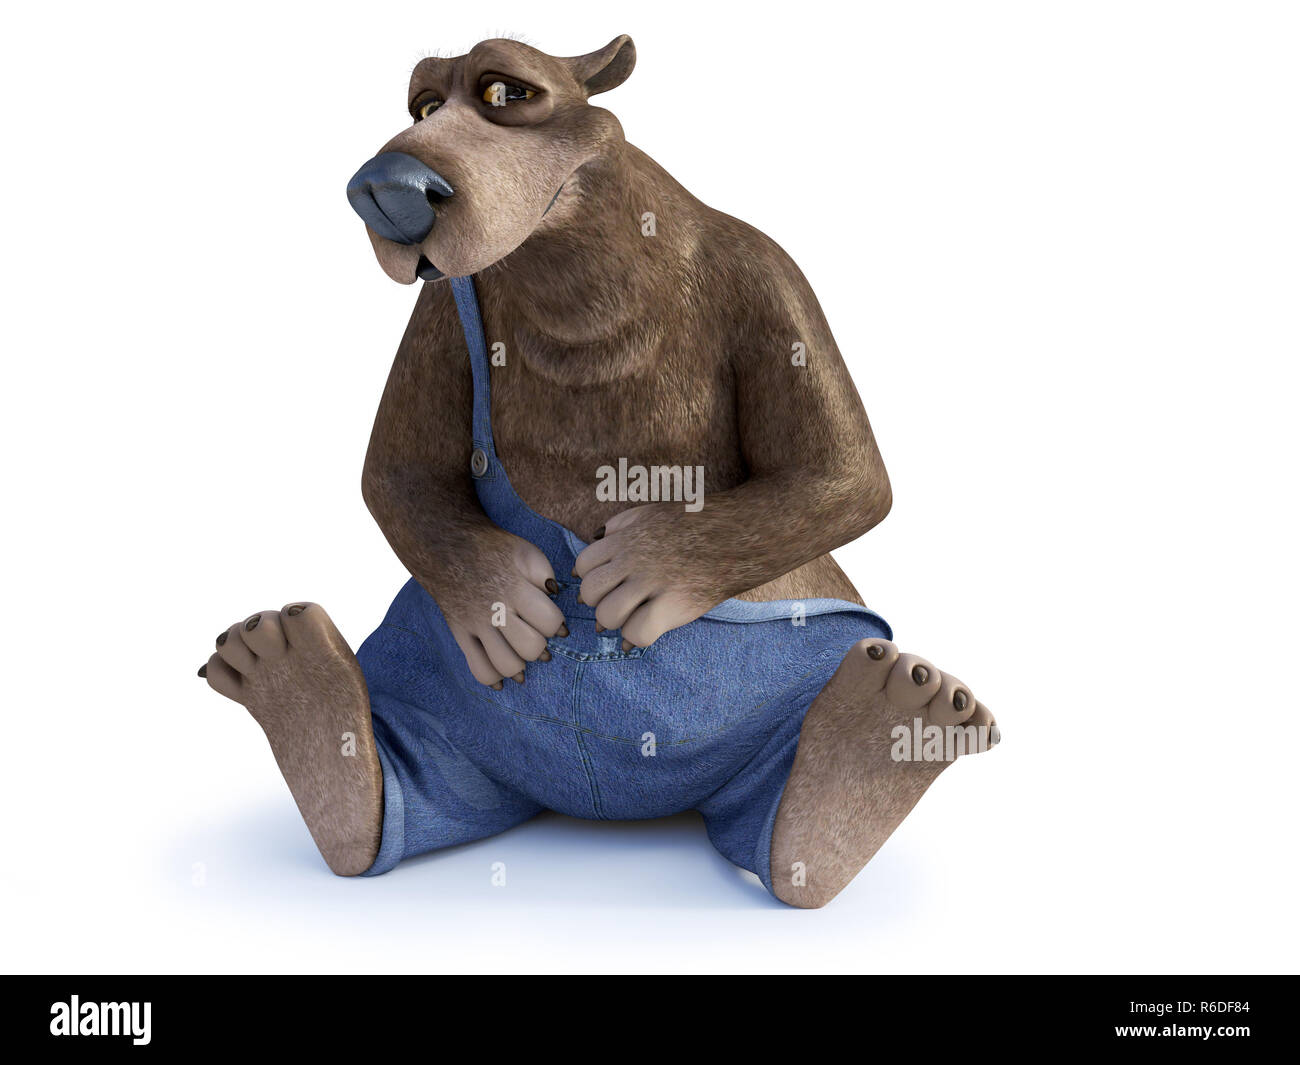 Cartoon Bear Sitting Down On The Floor Stock Photo Alamy